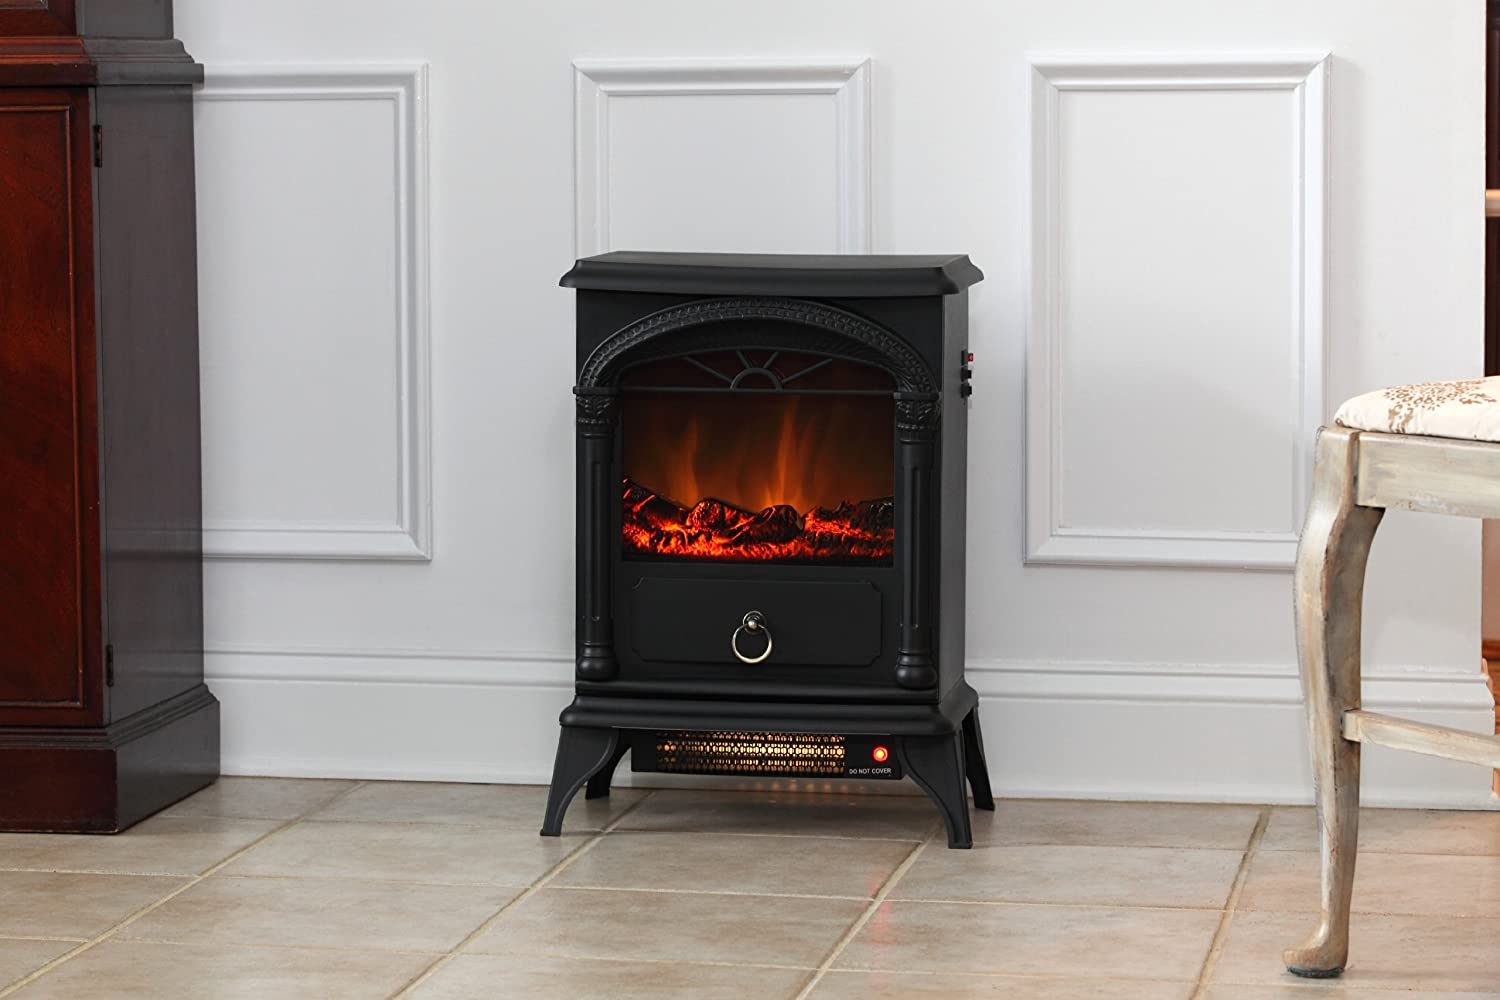 100 wood stove floor protector should you be concerned